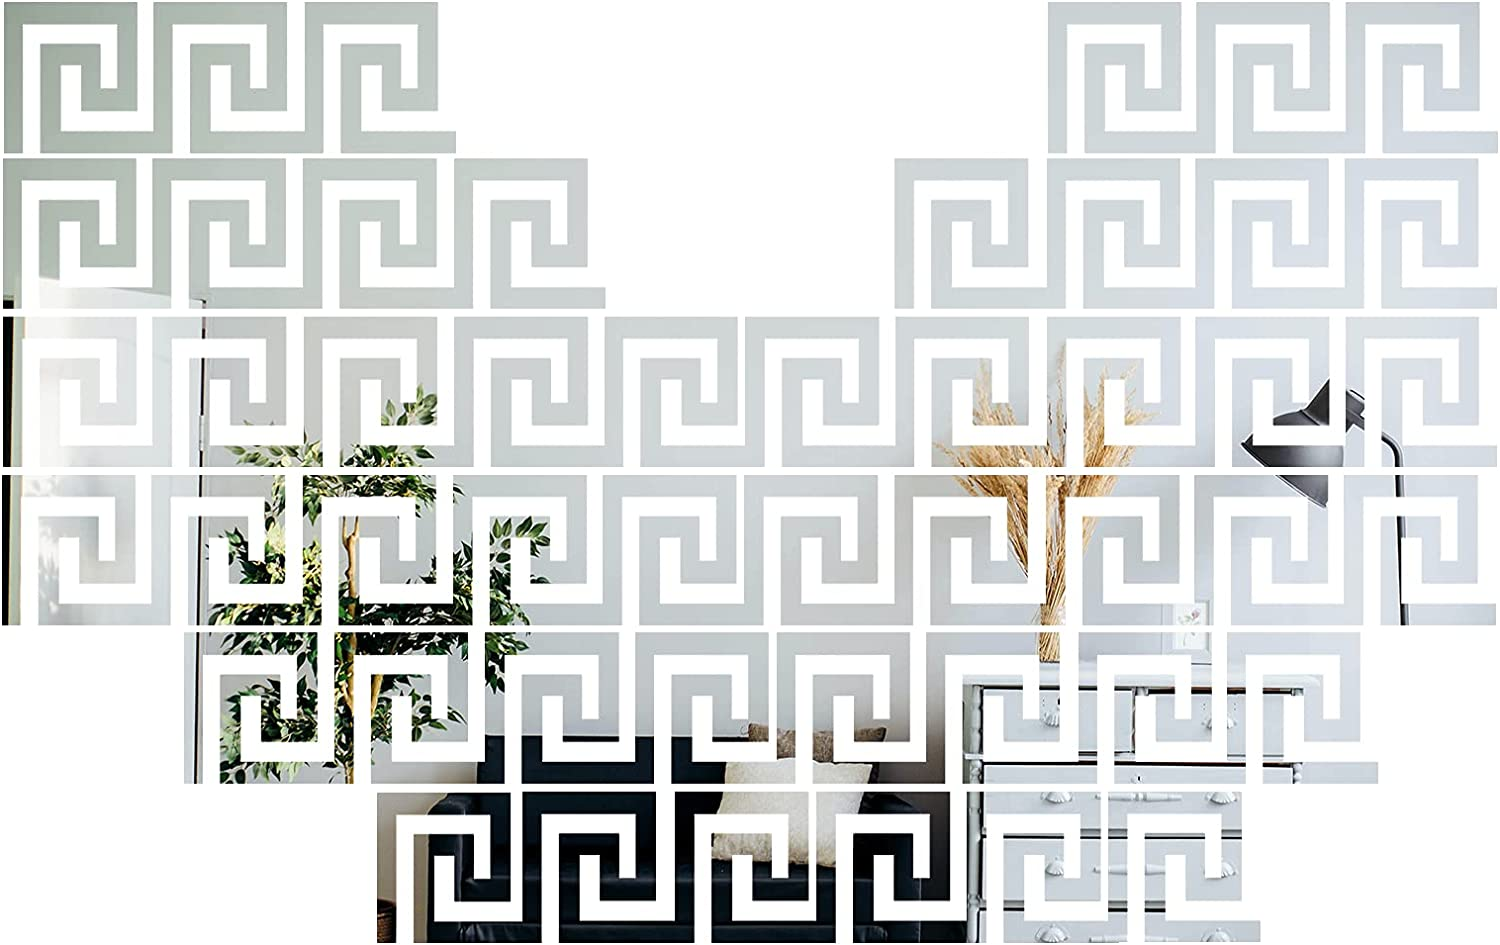 MicButty Mirror Wall Stickers, 48 PCS Removable Acrylic Mirror Wall Decal Geometric Greek Key Mirror Sticker Adhensive Stickers for Home Living Room Bedroom TV Background (Silver, 4 x 4 Inch)